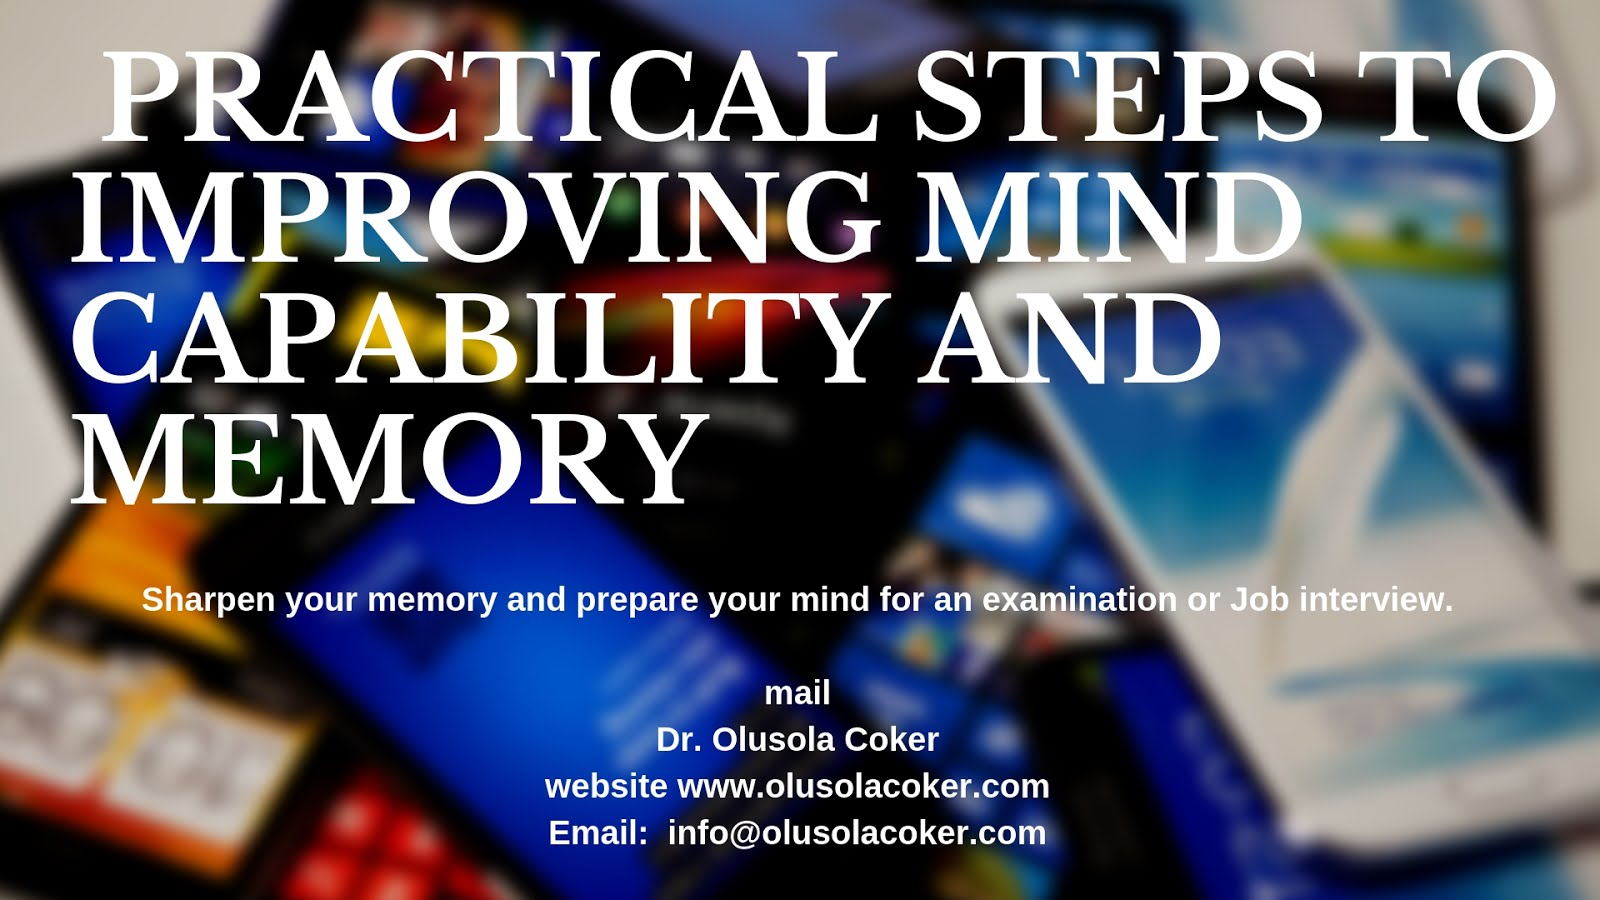 Practical Steps to improving mind capability and Memory: Sharpen your memory and prepare your mind